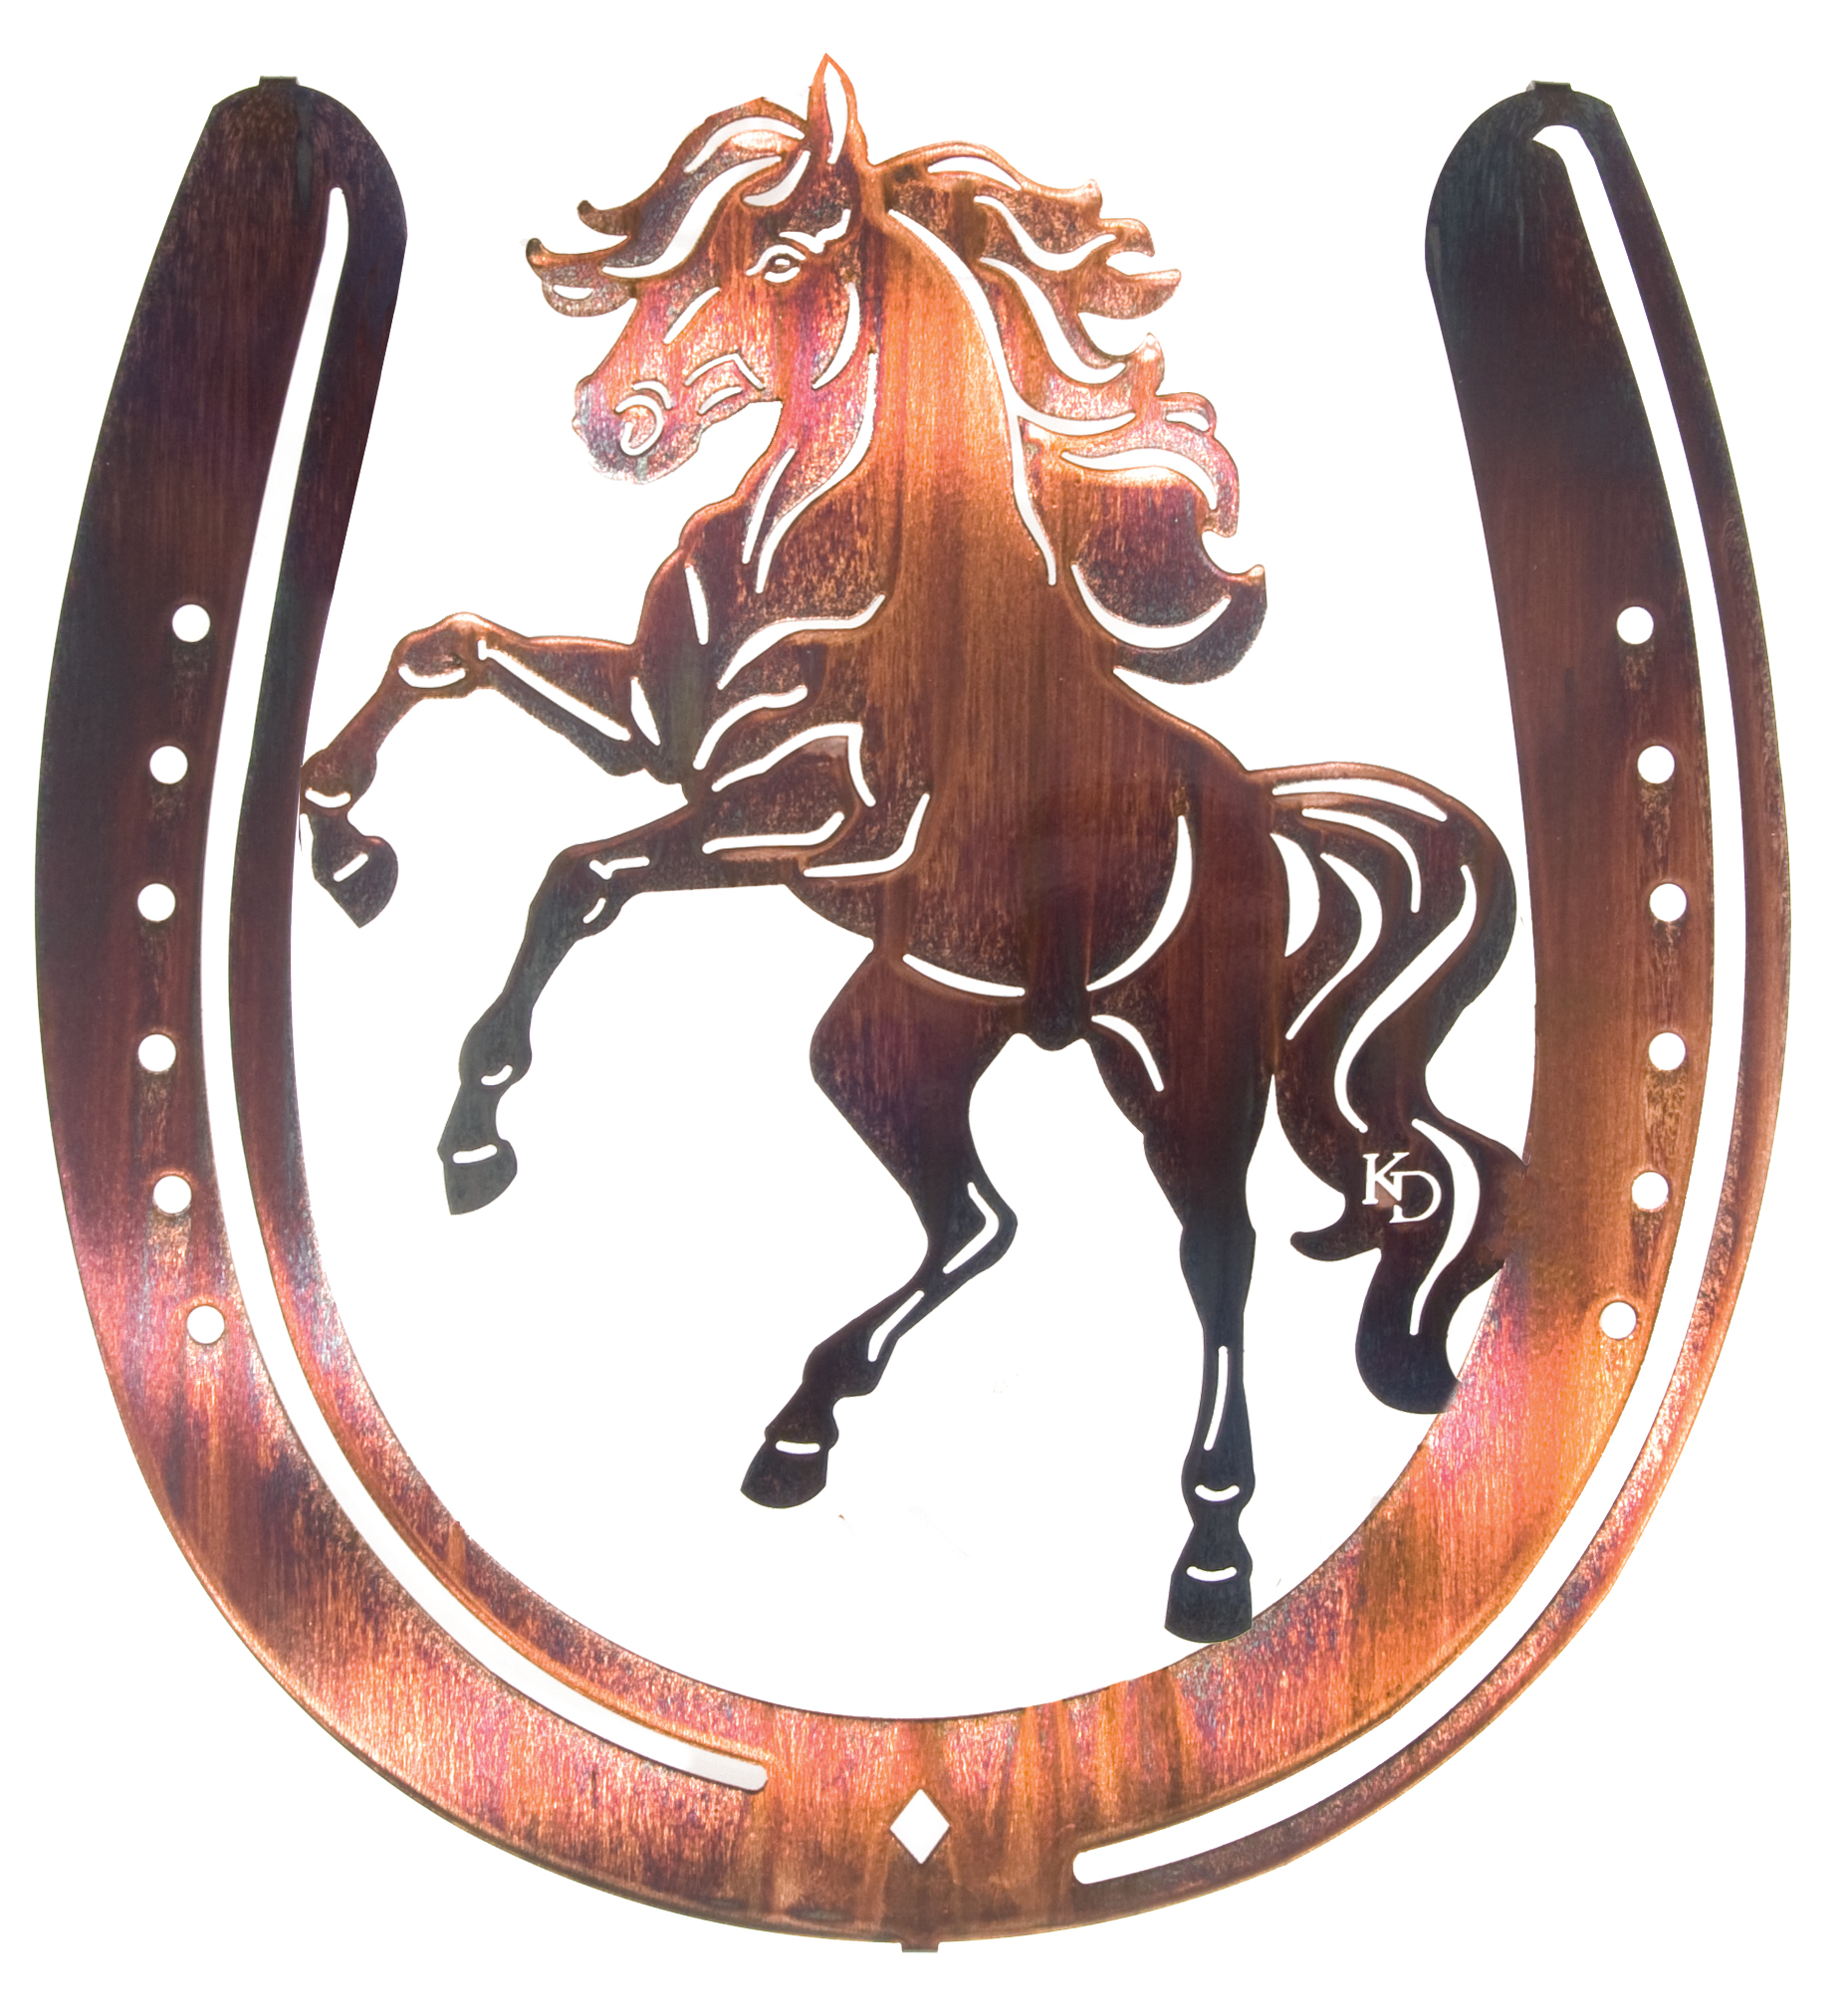 Horse metal wall art hangings hanging wall art of horses by lazart productions at carolynskorner where our customer service is forever amipublicfo Gallery